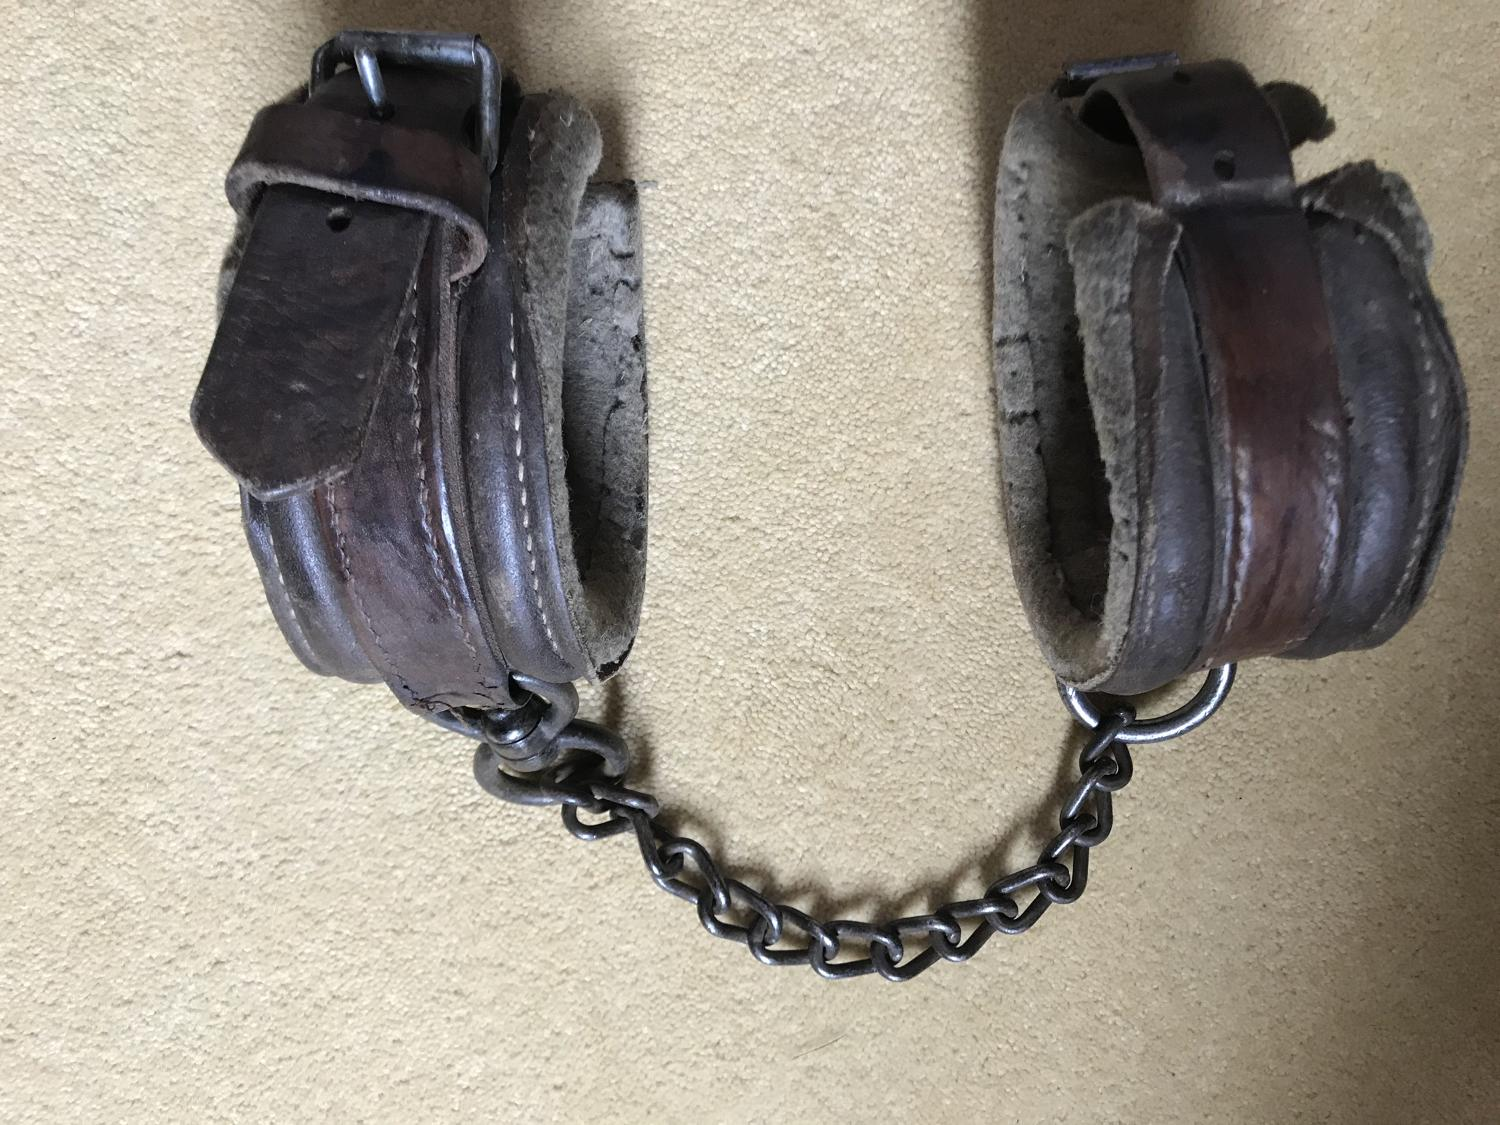 Antique Farrier's Horse Shackles